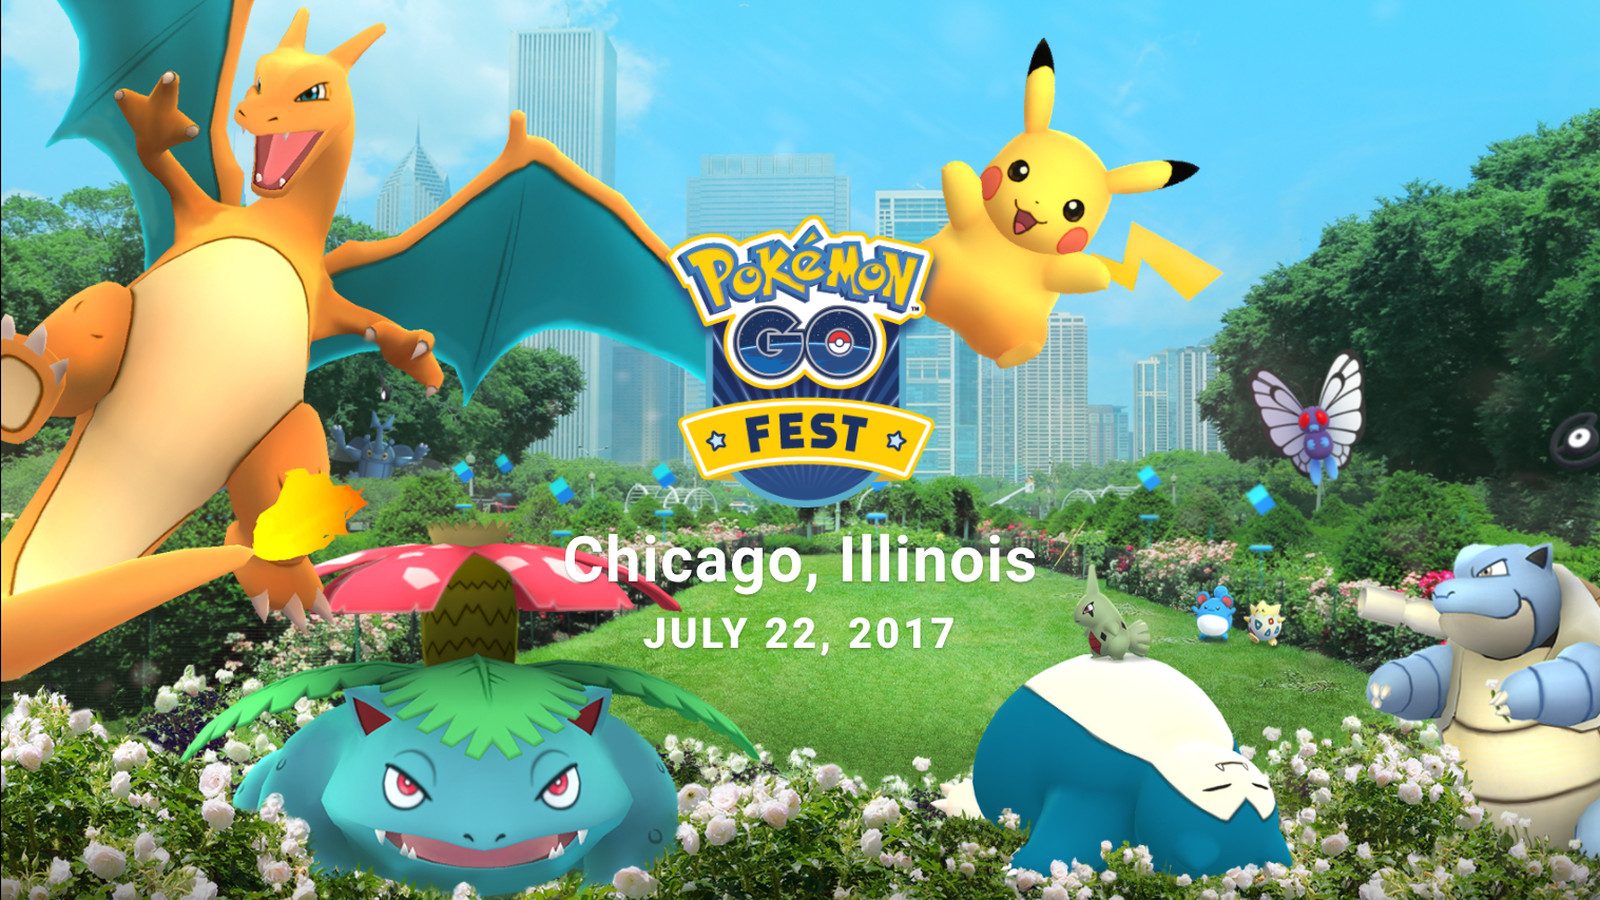 GO Fest 2018 Update: Tickets sold out in less than 1 hour ...